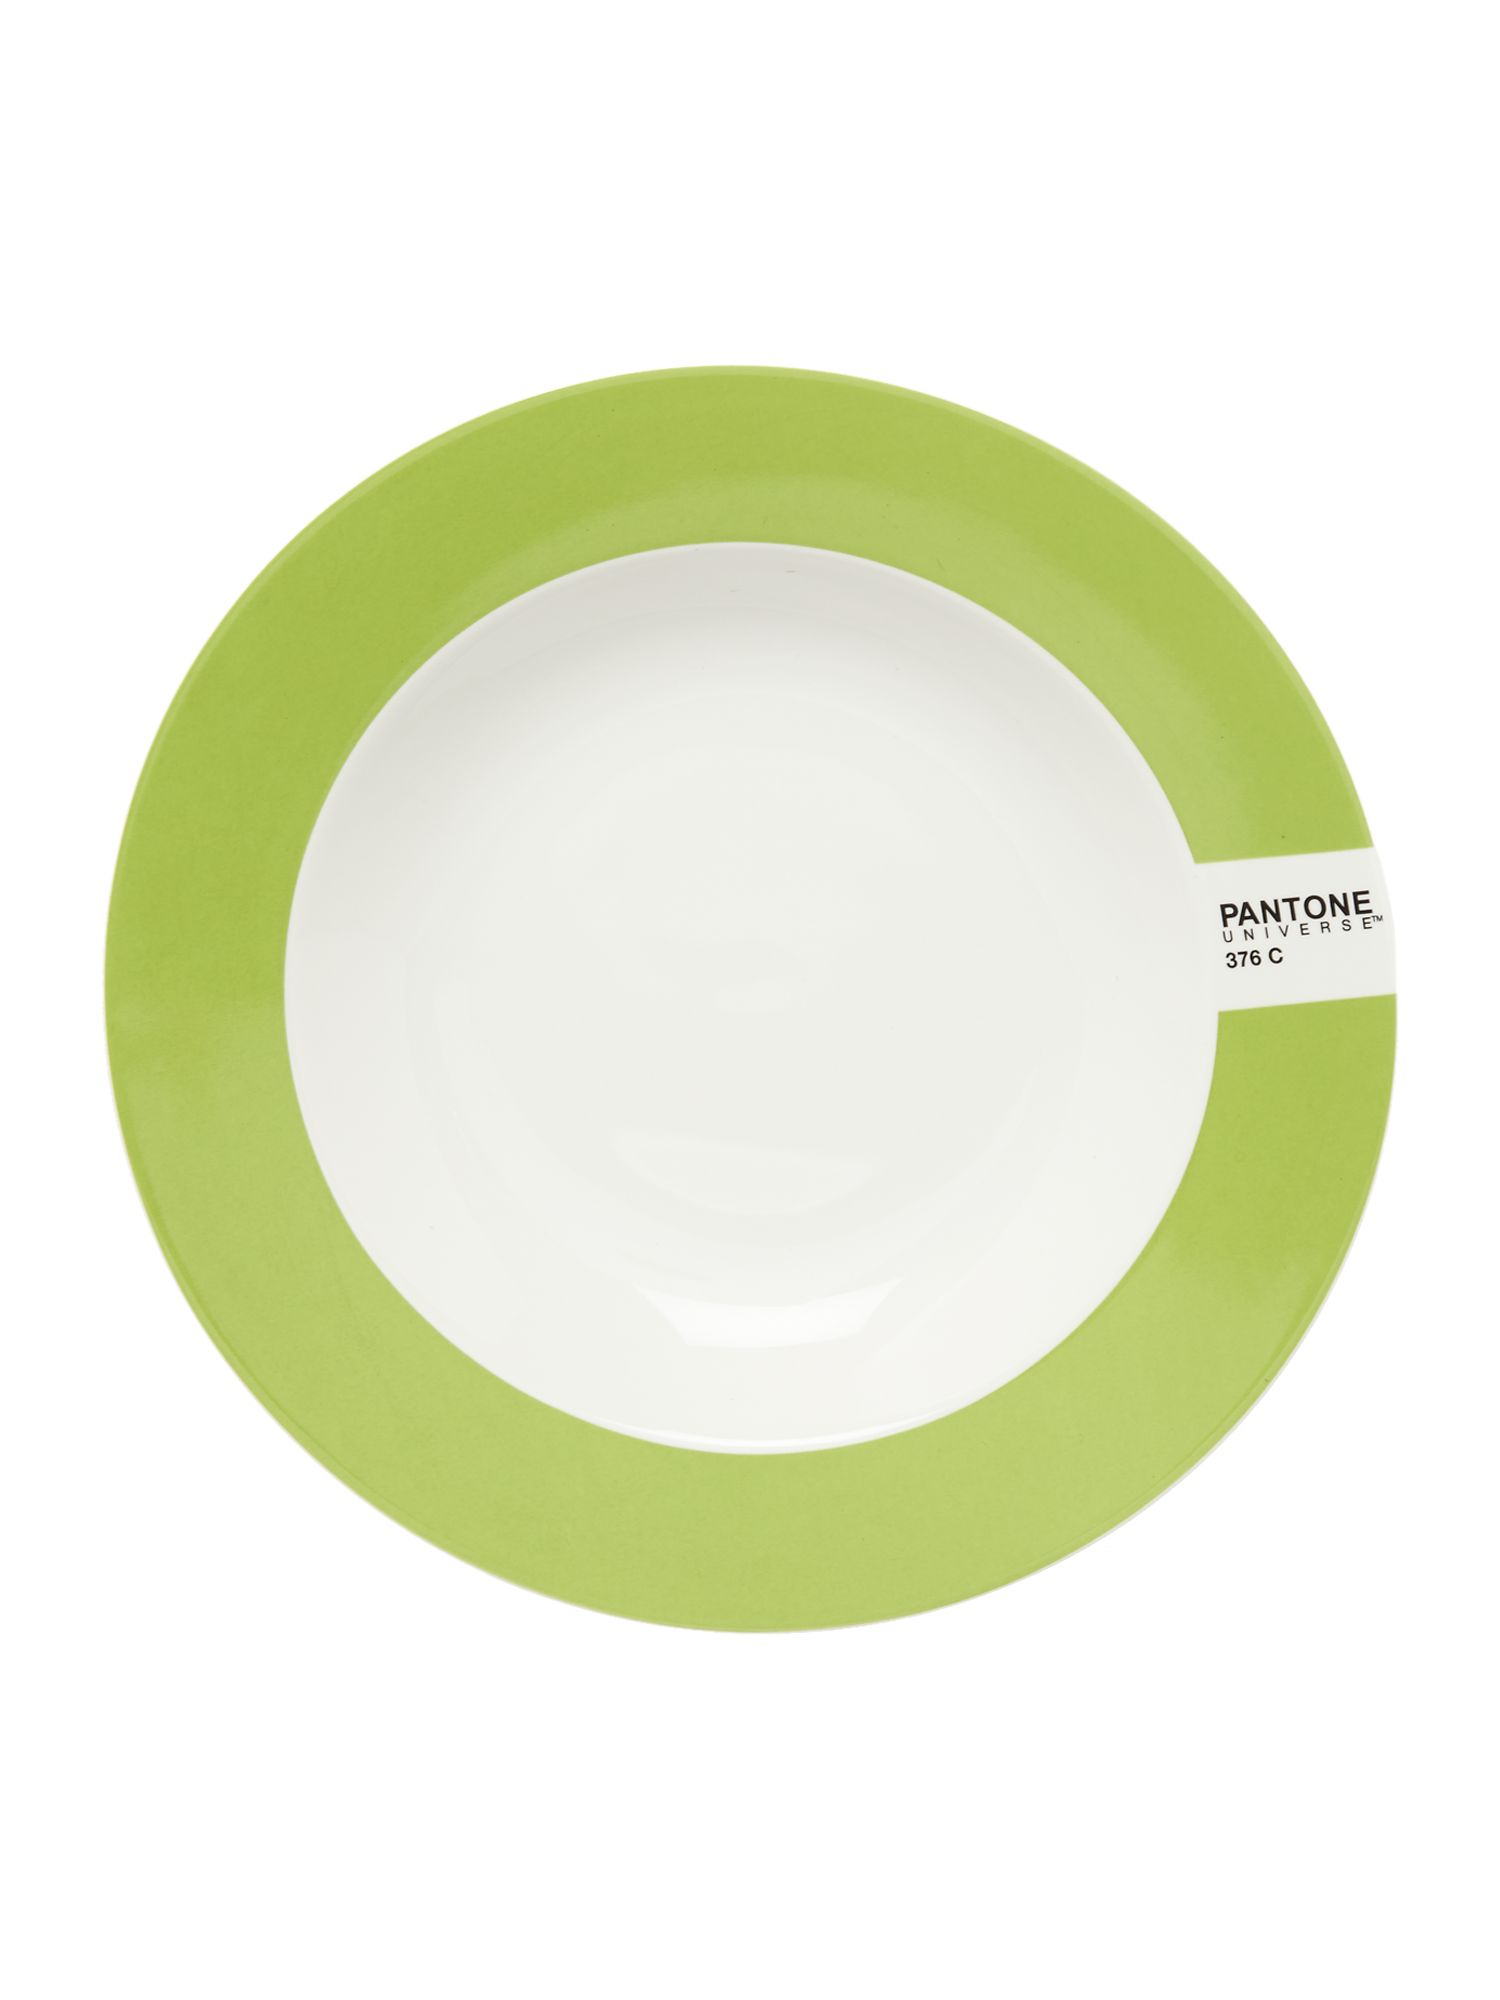 Image of Pantone Soup plate luca trazzi bright green